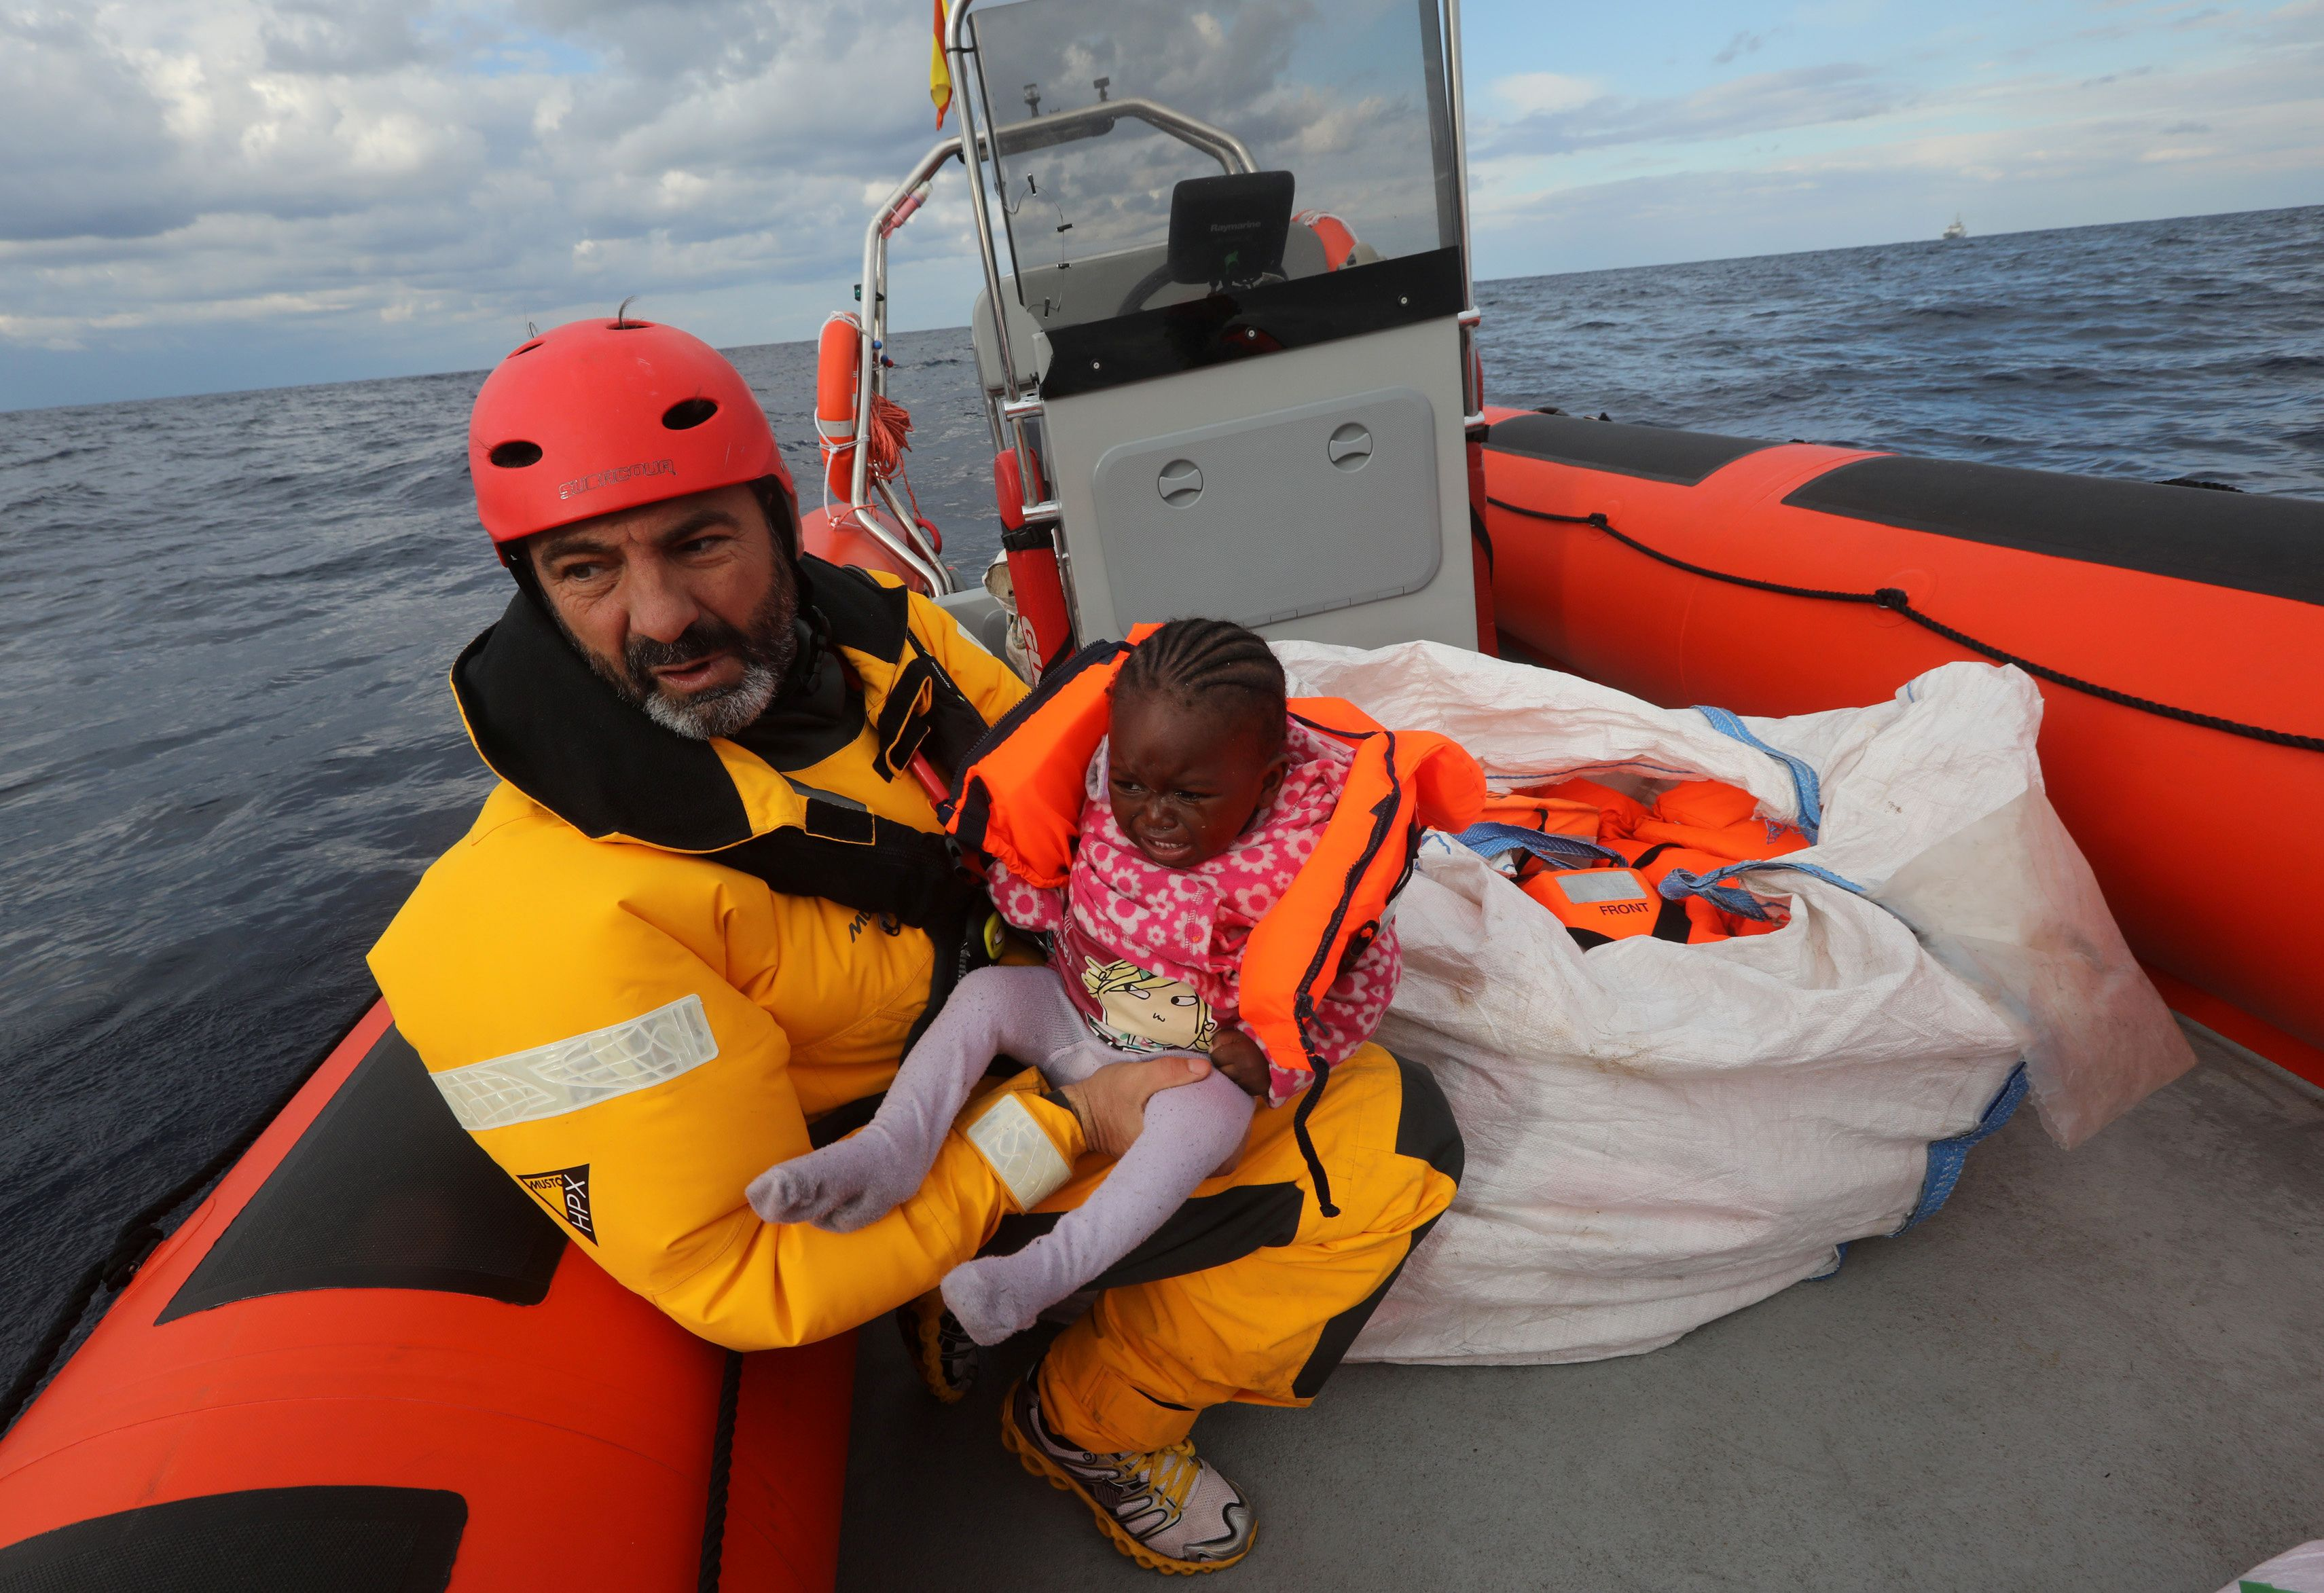 Oscar Camps, founder of Spanish NGO Proactiva Open Arms, holds a migrant child inside a rescue craft after pulling it from an overcrowded raft